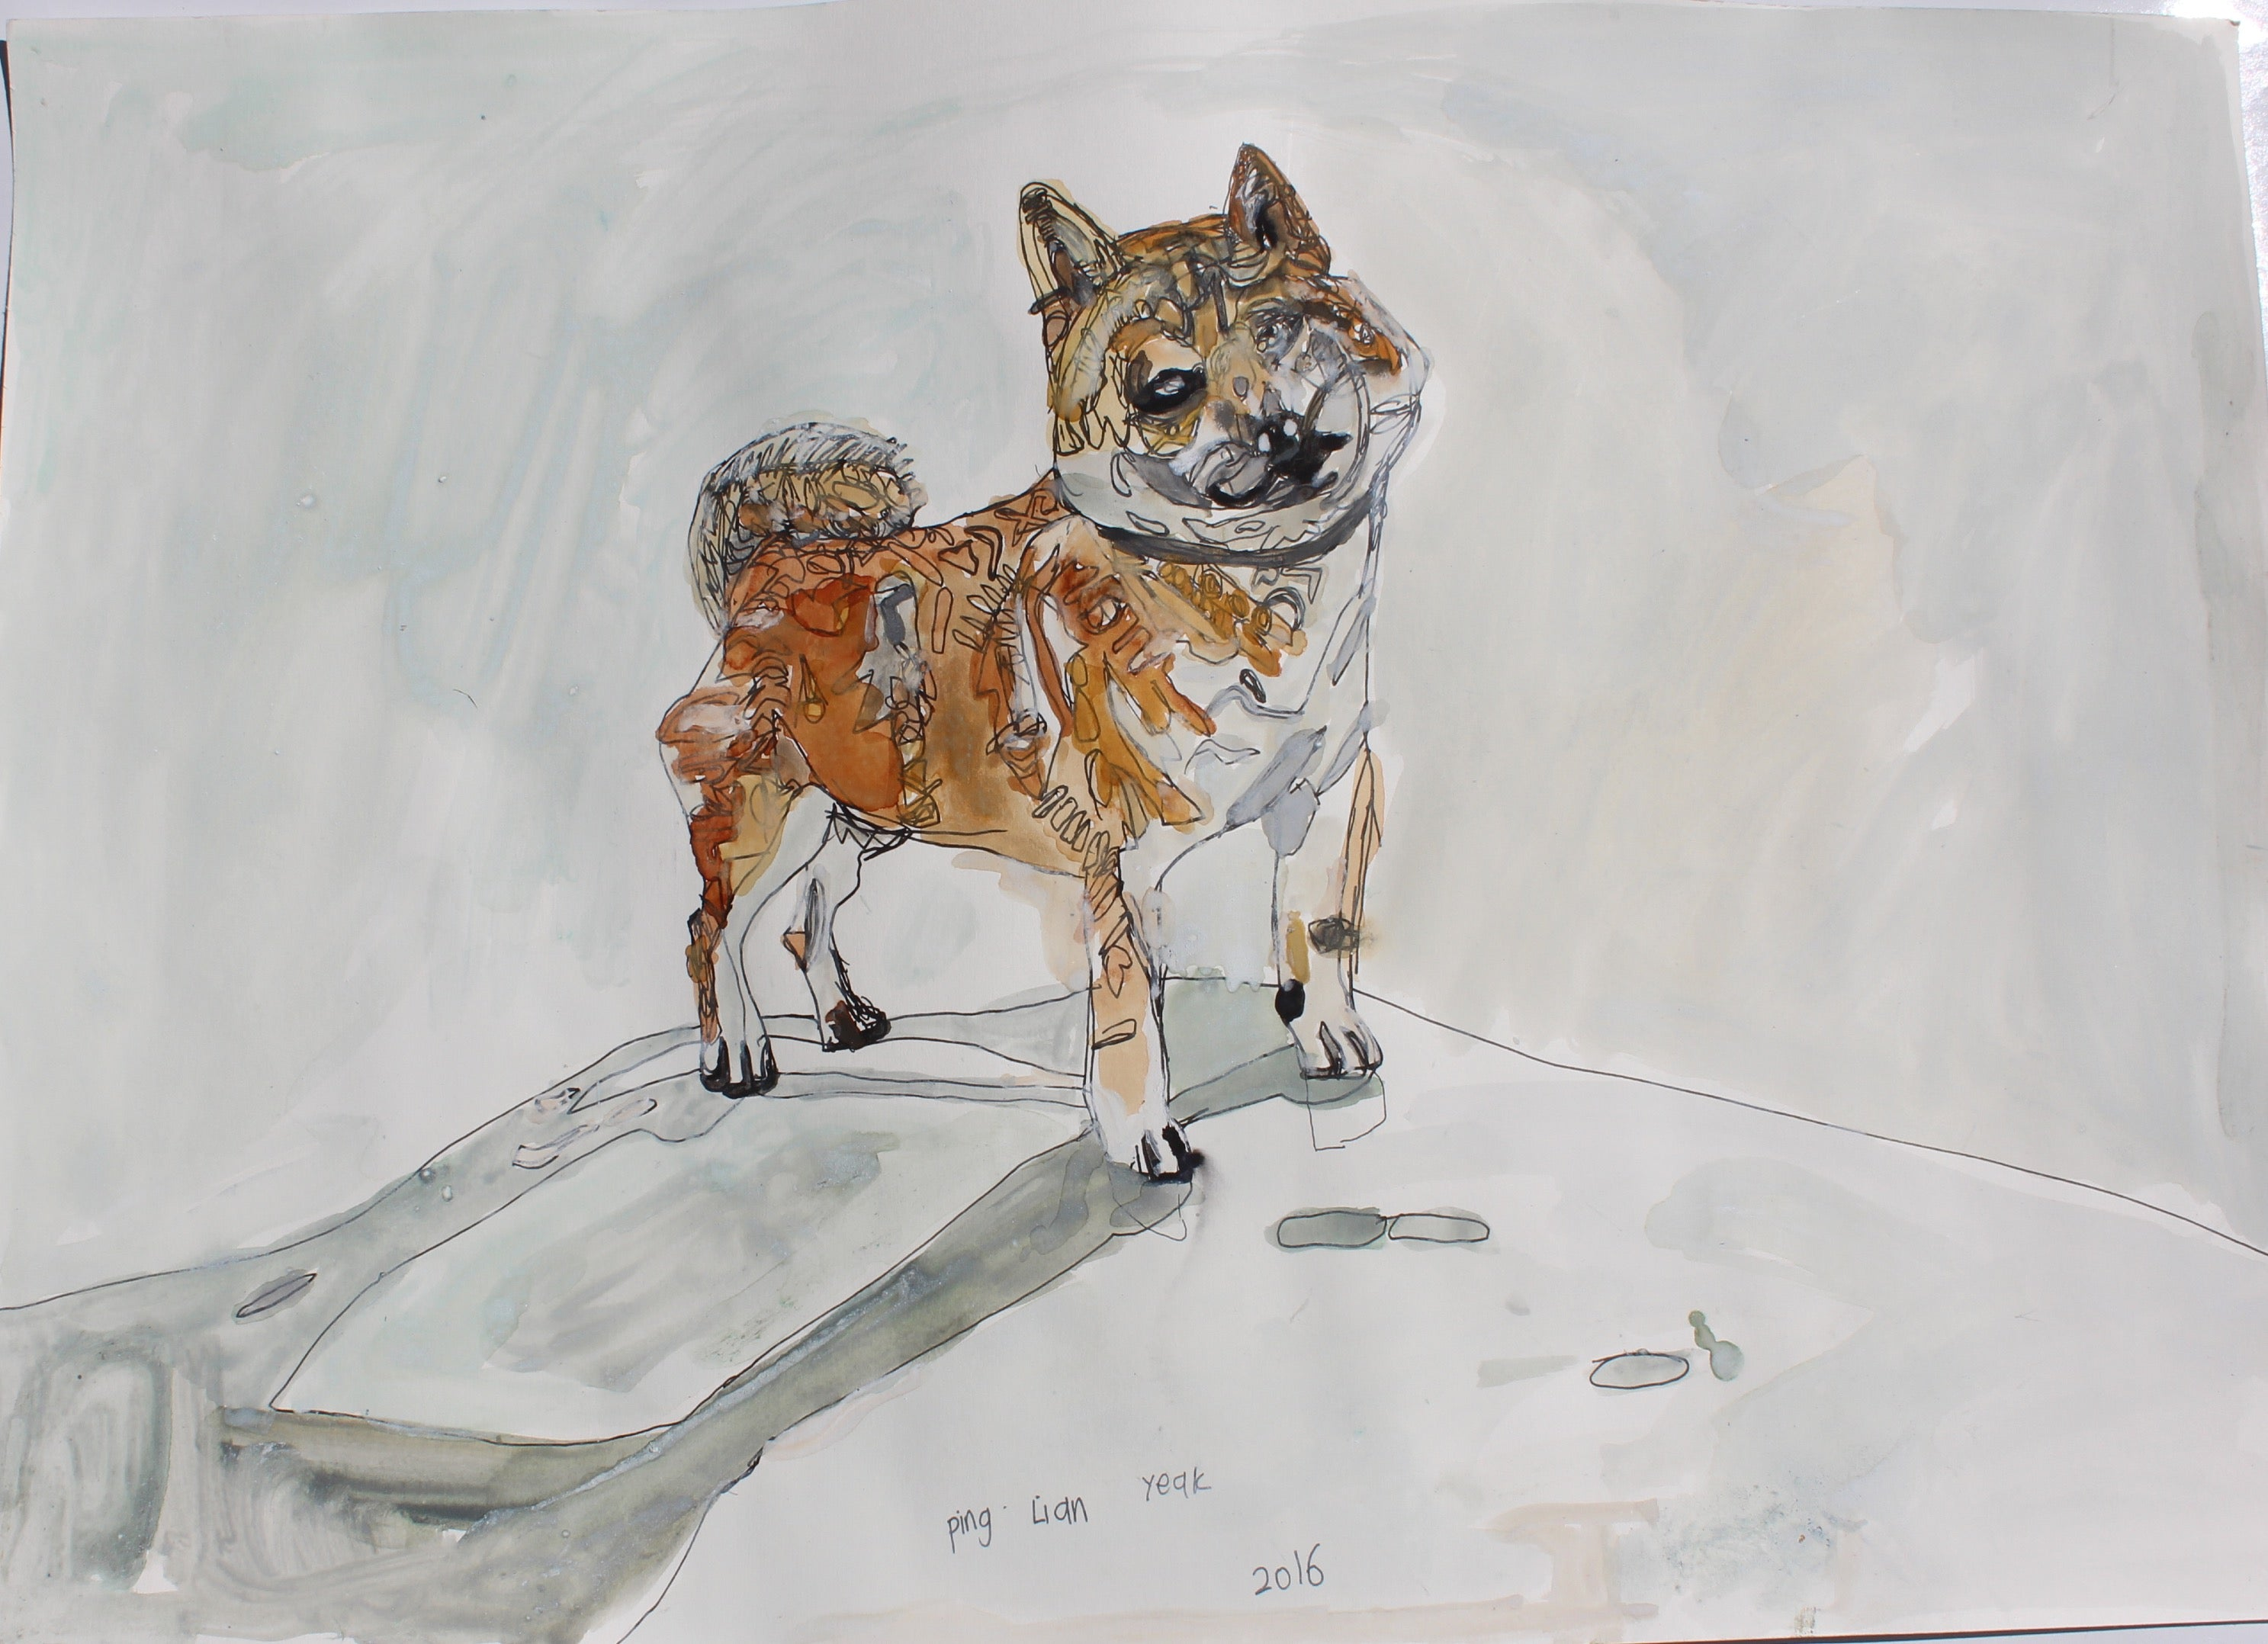 Original 16402 My Dog (Shiba Inu) - Painted in 2016 - 16.5 X 23.3 inches